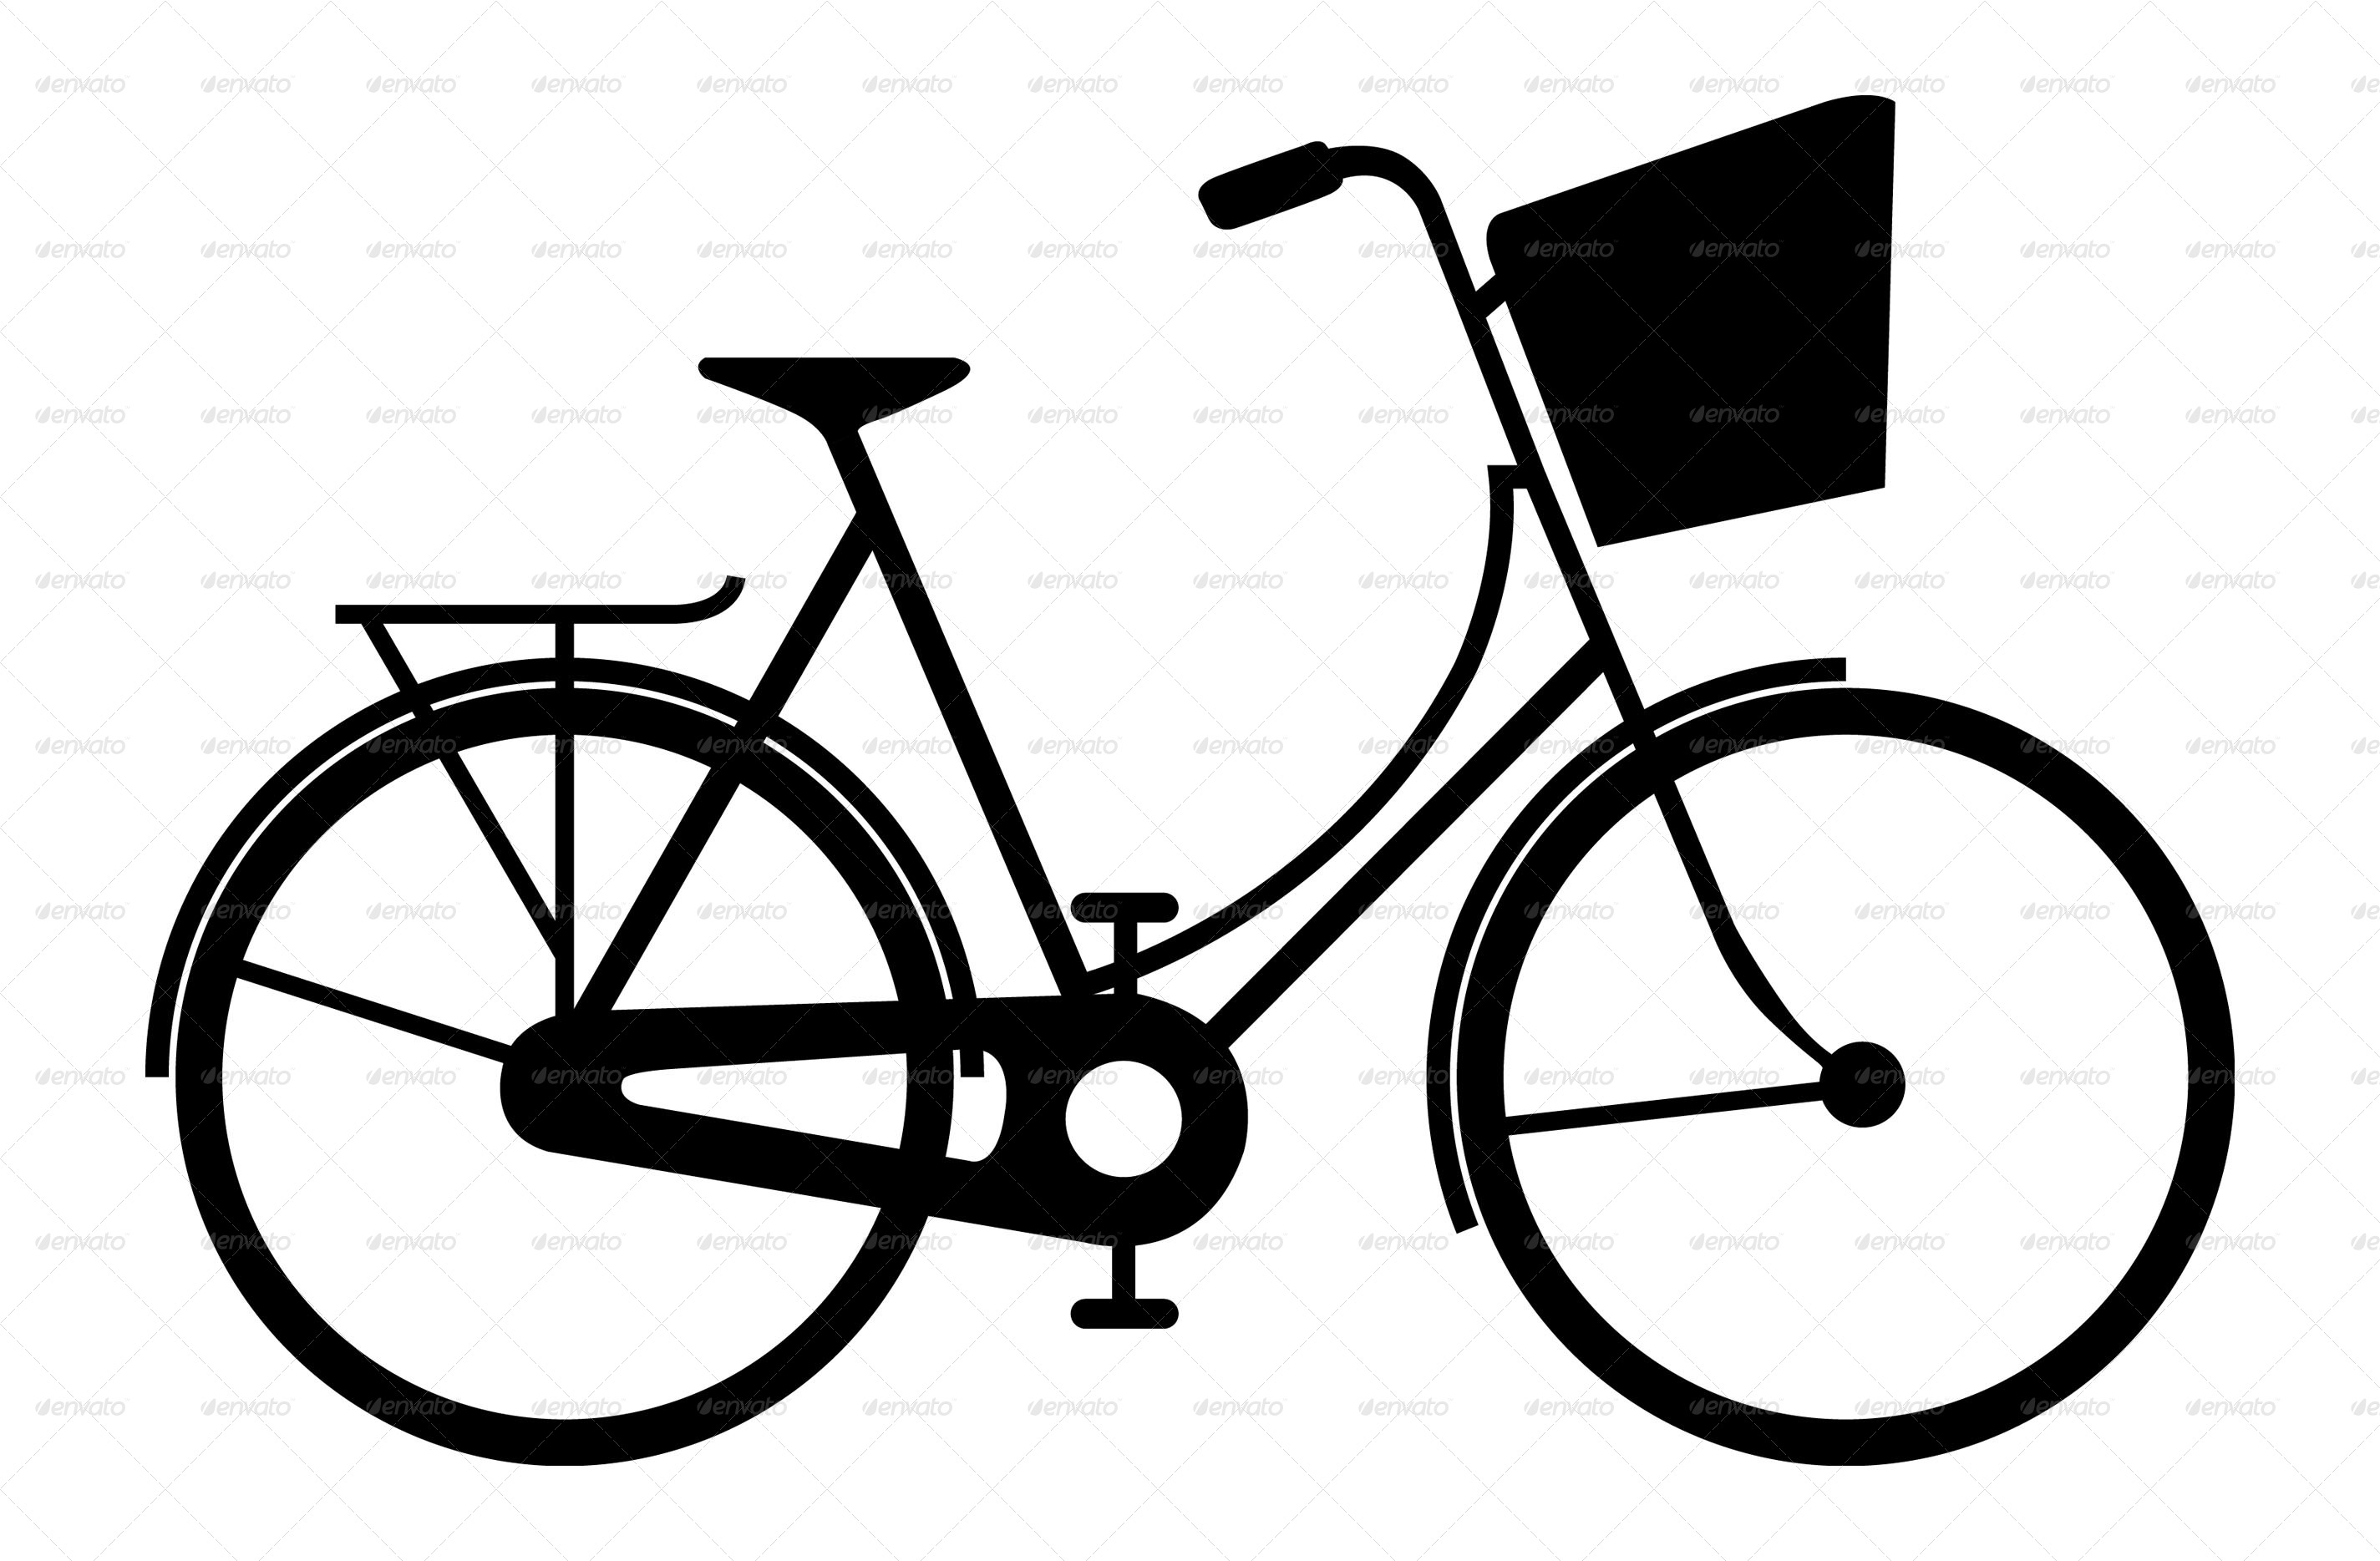 2849x1869 Bicycle Silhouettes By Mdshahidullah609 Graphicriver